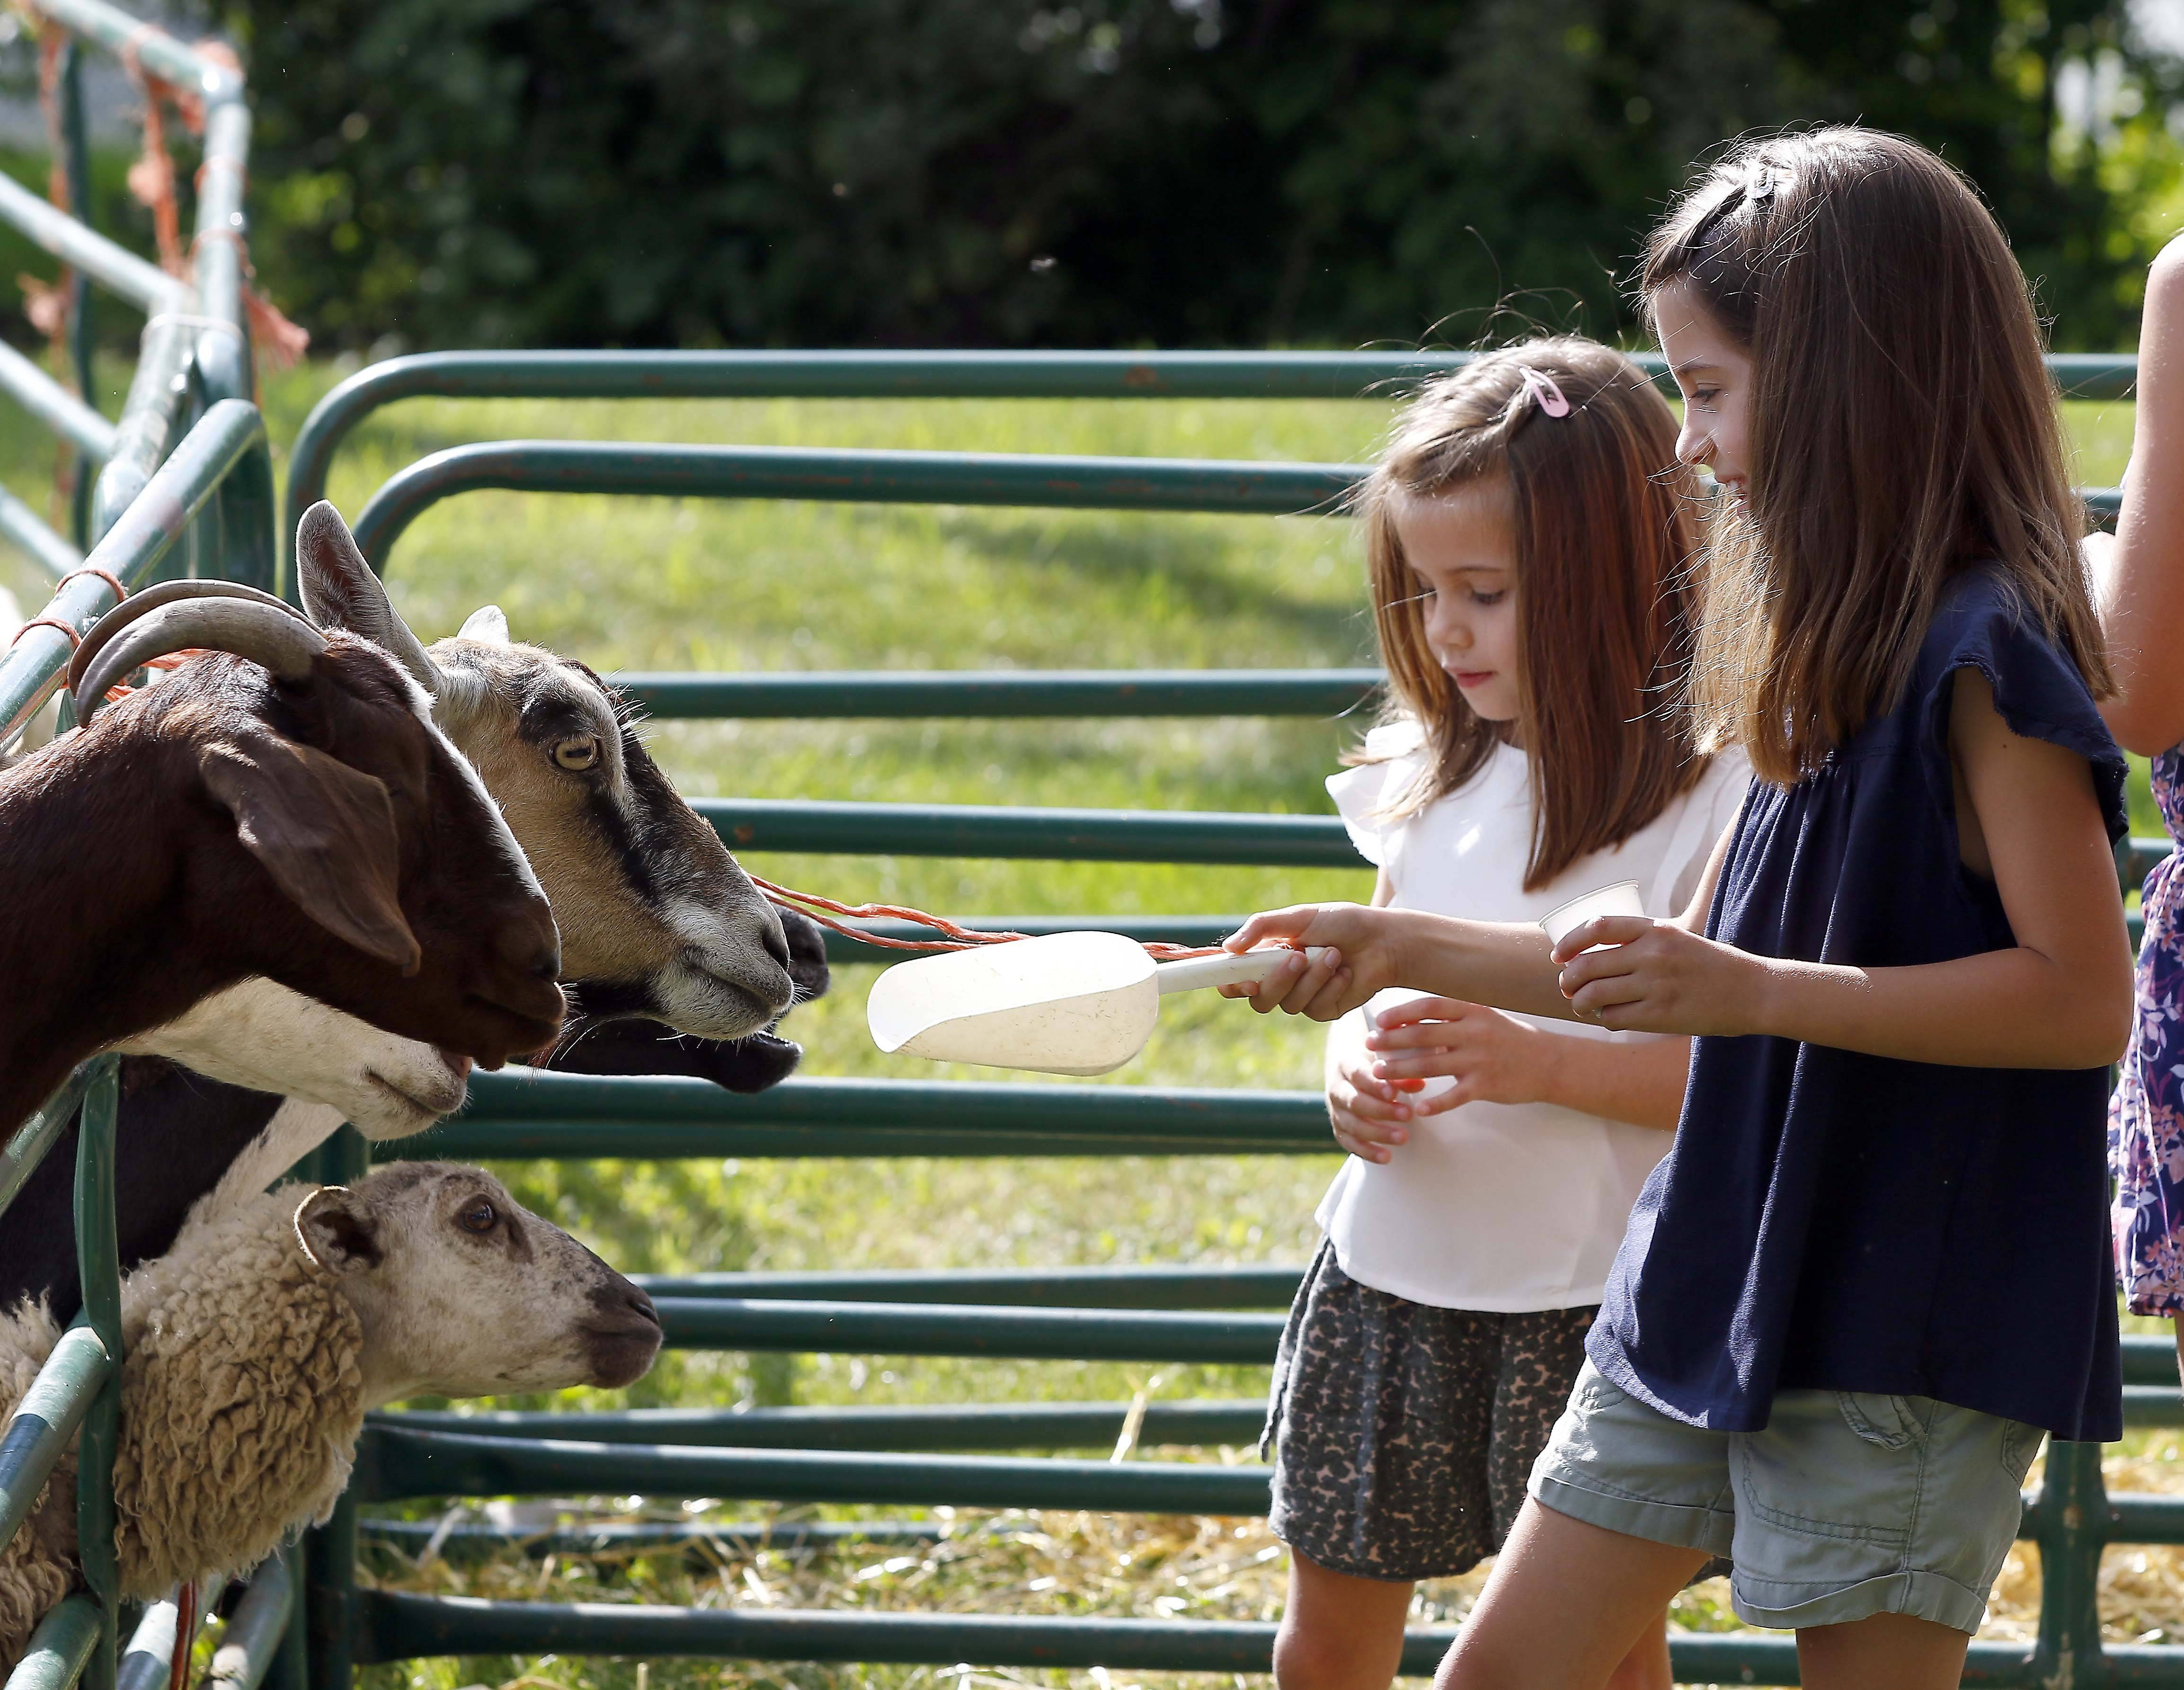 Sisters Ava, left, and Frankie Sillitoe of Geneva feed animals at the petting zoo Saturday during the Wayne Wine & Horse Fest at Dunham Woods Riding Club. There was music, food, kids activities, horses and wine, all benefiting the police department.